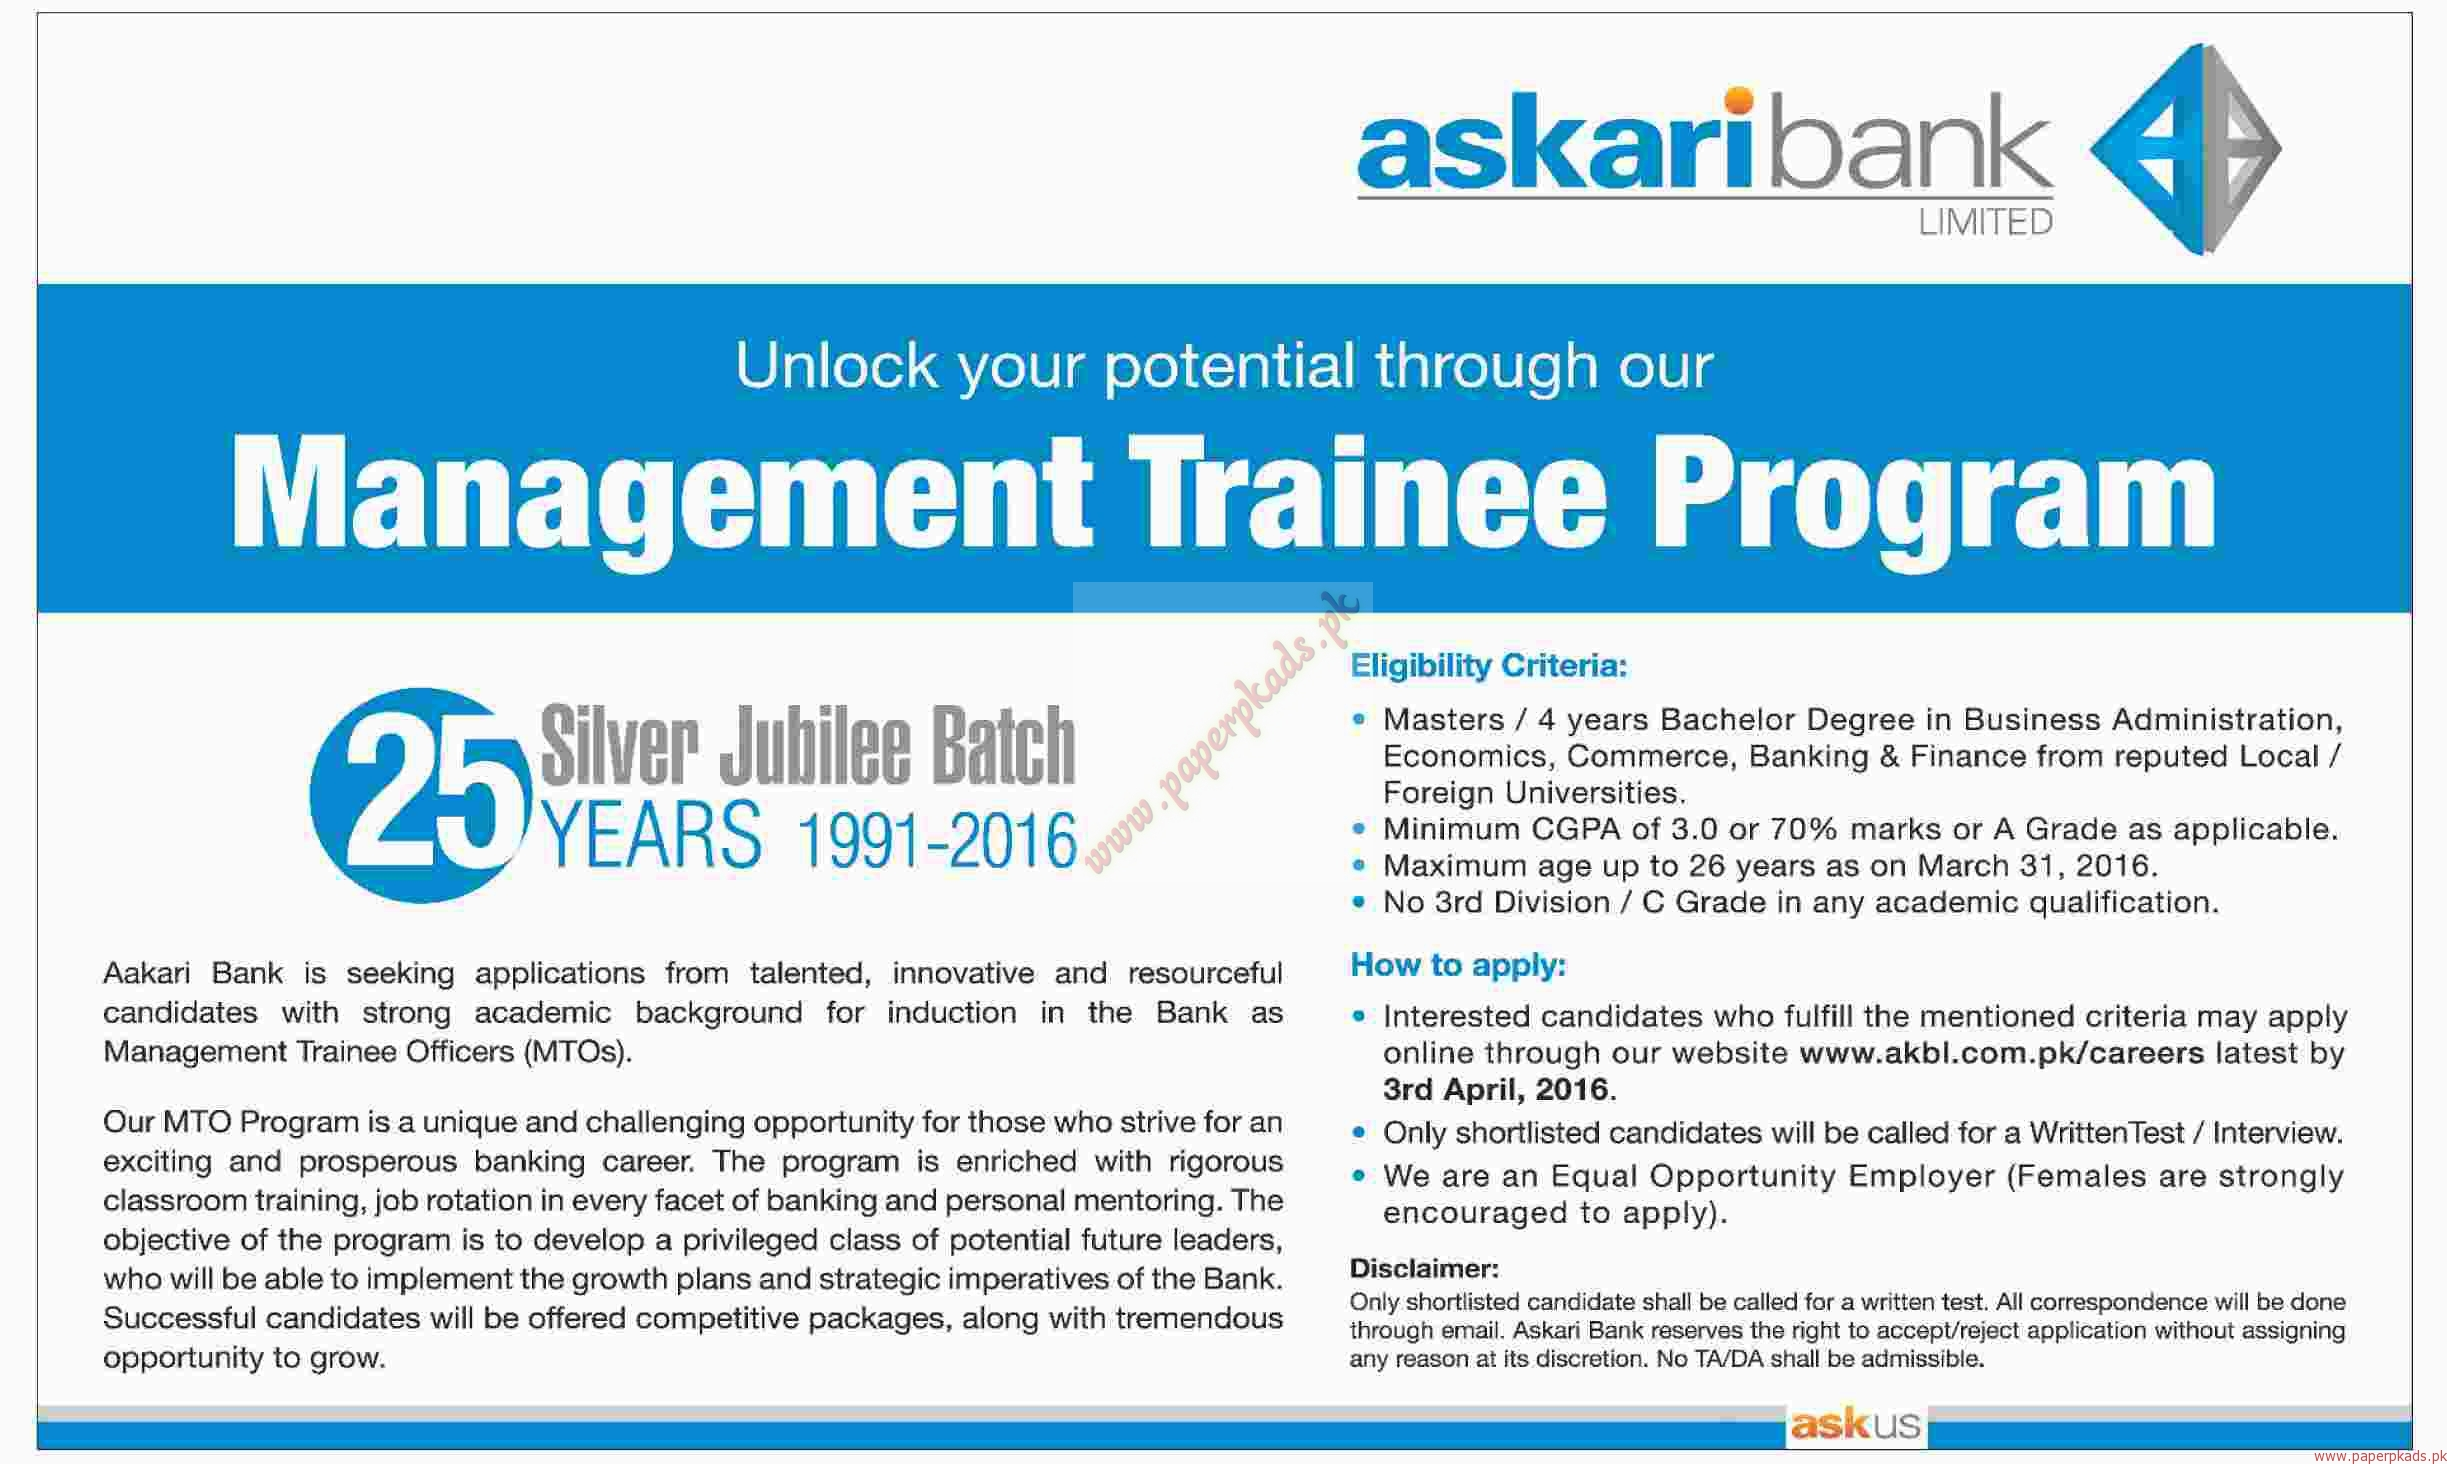 askari bank limited Jobs in askari bank 2018 in newspaper ads for freshers and experienced job seekers from paperpkcom.